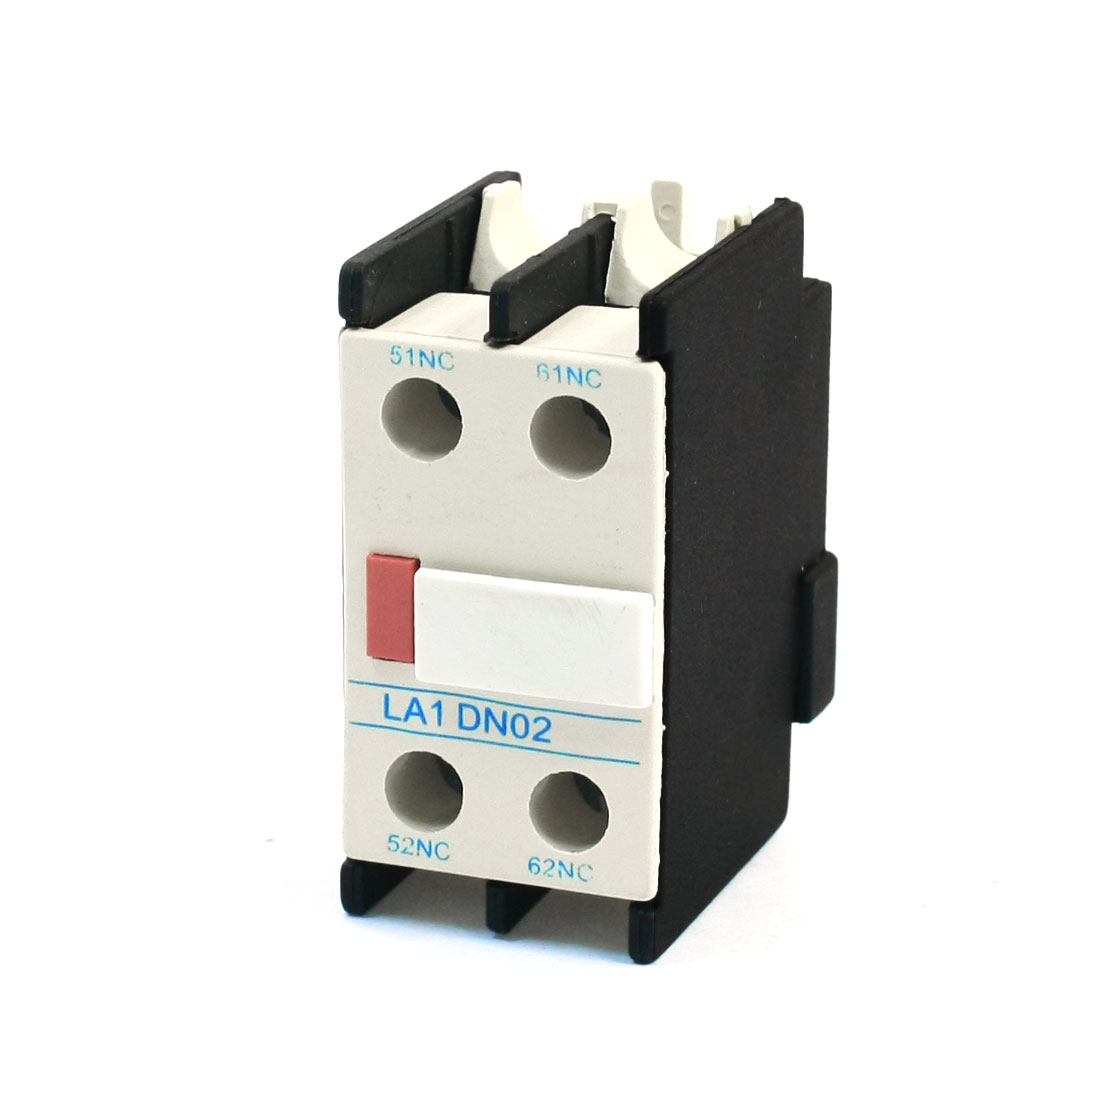 LA1-DN02 Ui 690V Ith 10A 2NC 4 Screw Terminal Circuit Protective AC Electric Contactor Auxiliary Contact Block